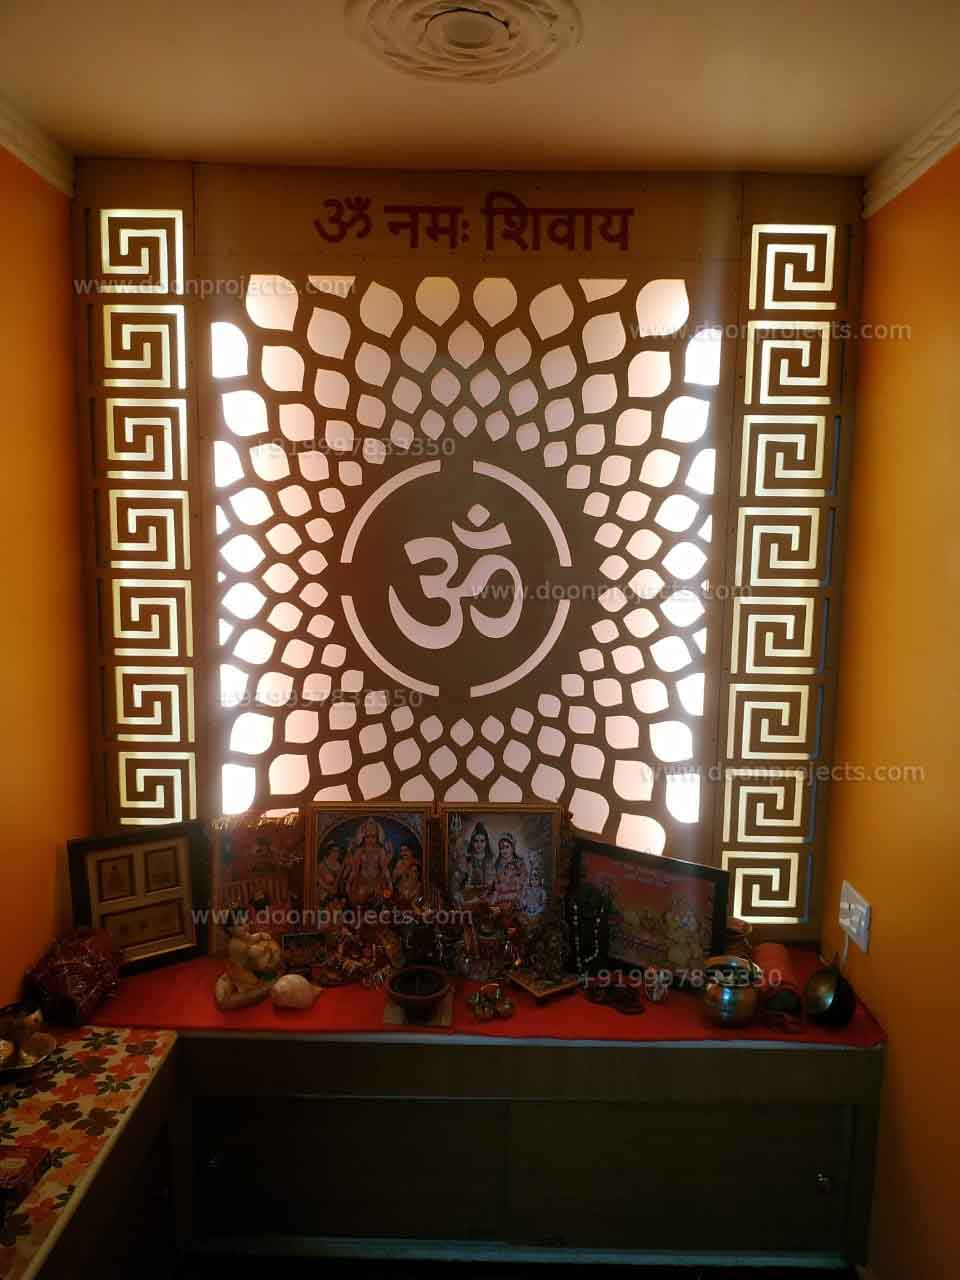 Om Namay Shivay written with 3mm Acrylic - Red